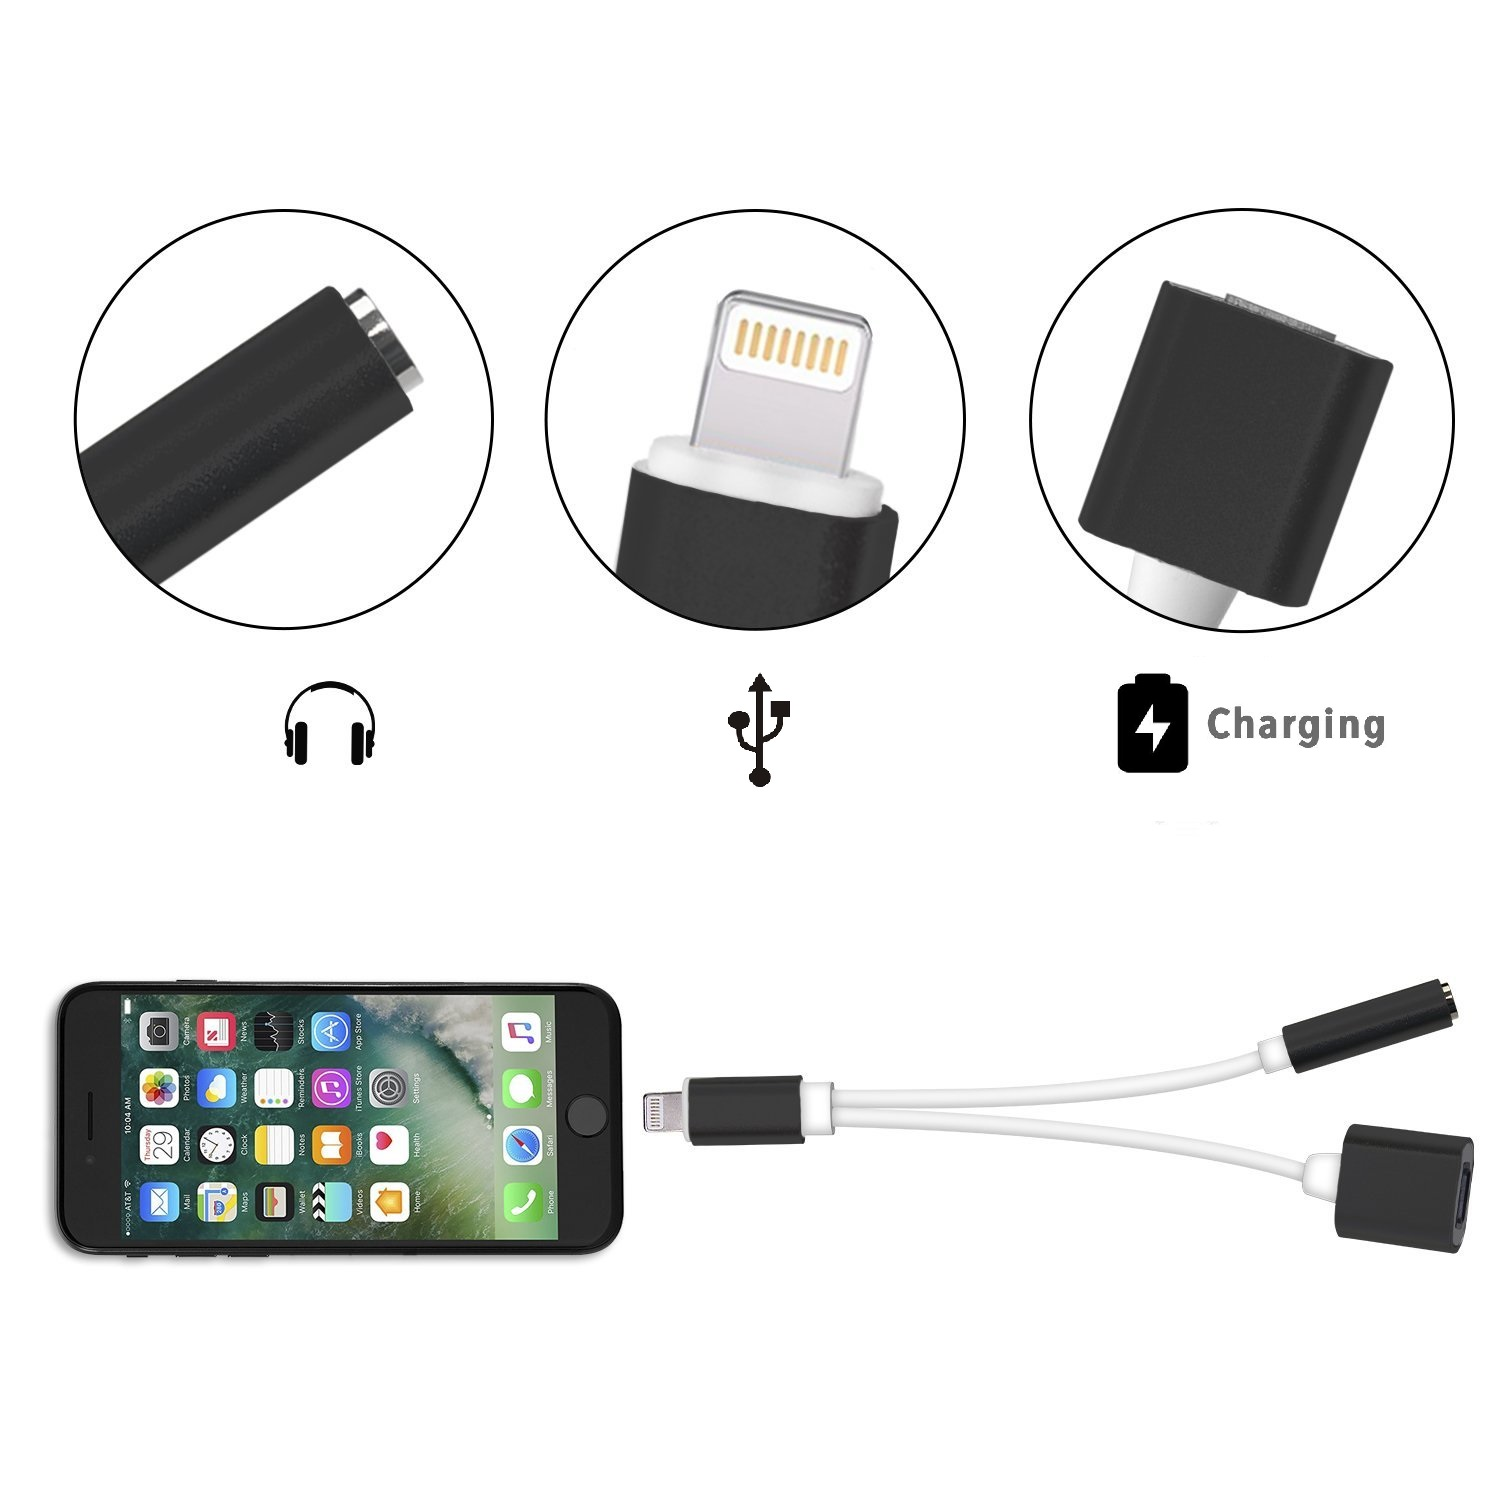 2 in 1 Lightning Adapter for iPhone 7 / 7 Plus / 6s / 6s Plus, Lightning Charger and 3.5mm Earphone Stereo Jack Cable Adapter (Black)